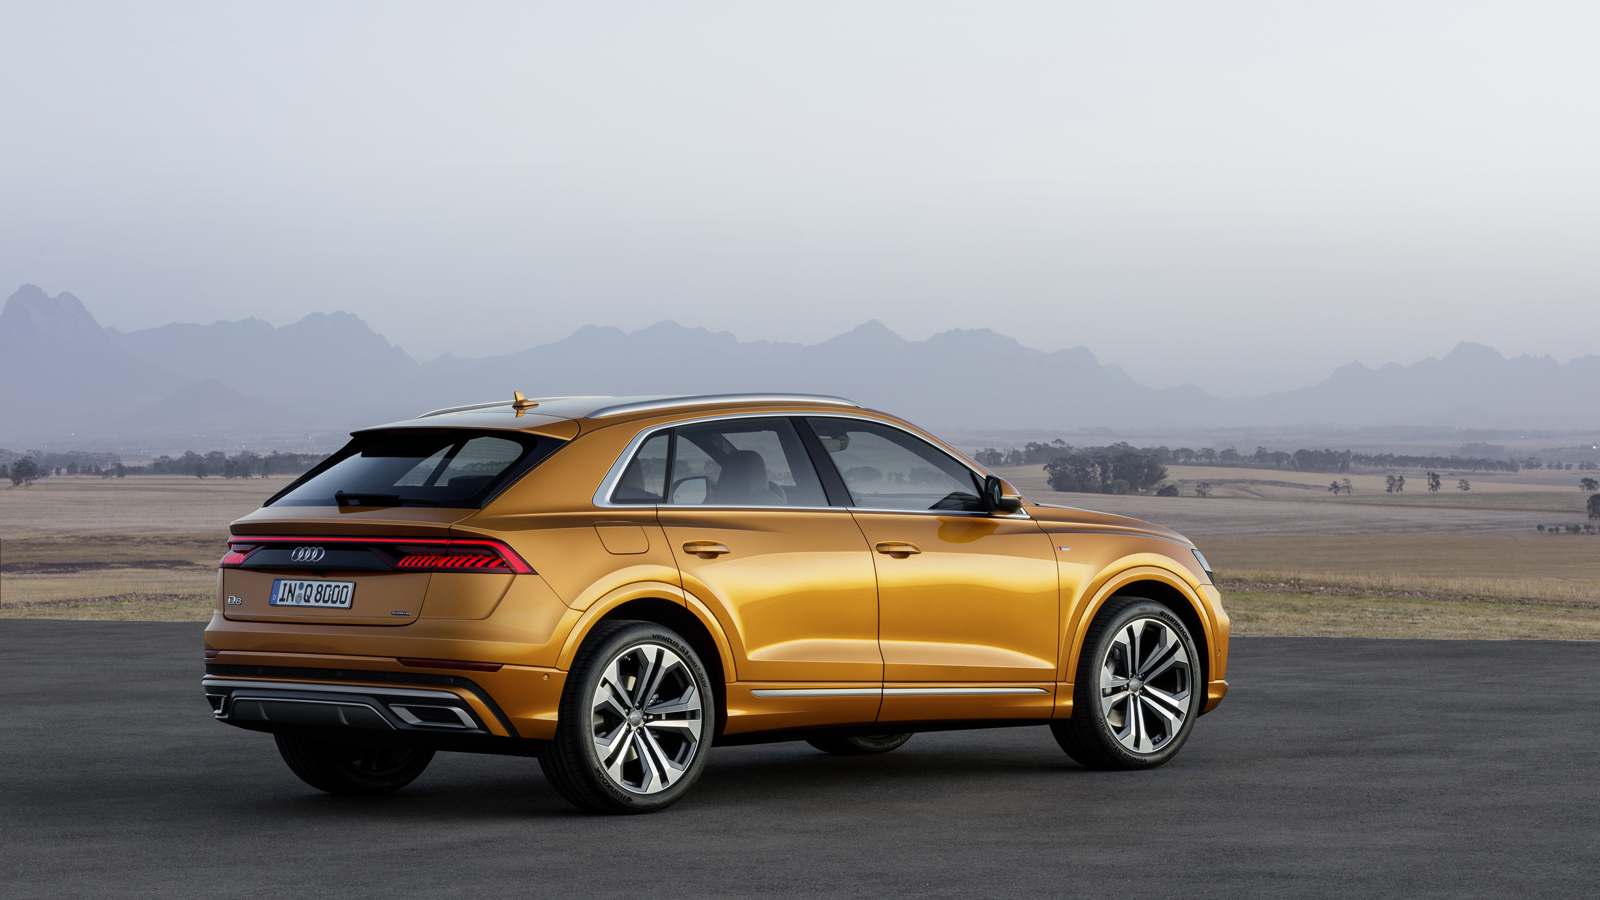 Suv Tesla Interior >> 2019 Audi Q8 Debuts With 48V Mild Hybrid V6, All-Wheel Steering » AutoGuide.com News